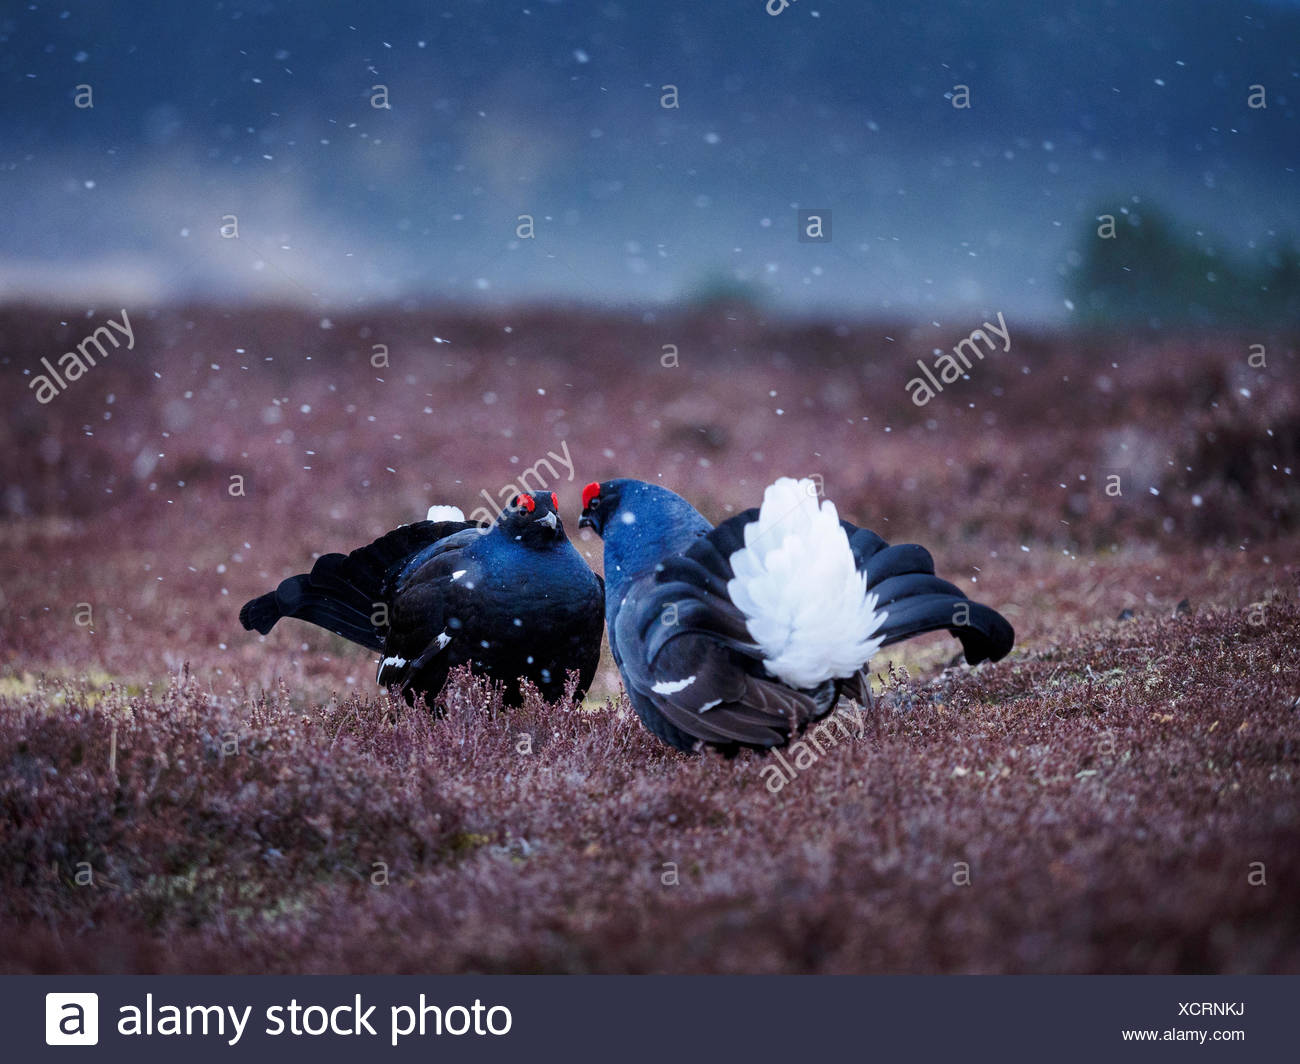 Mating rituals of black grouse on a lek in the highlands of Scotland. - Stock Image